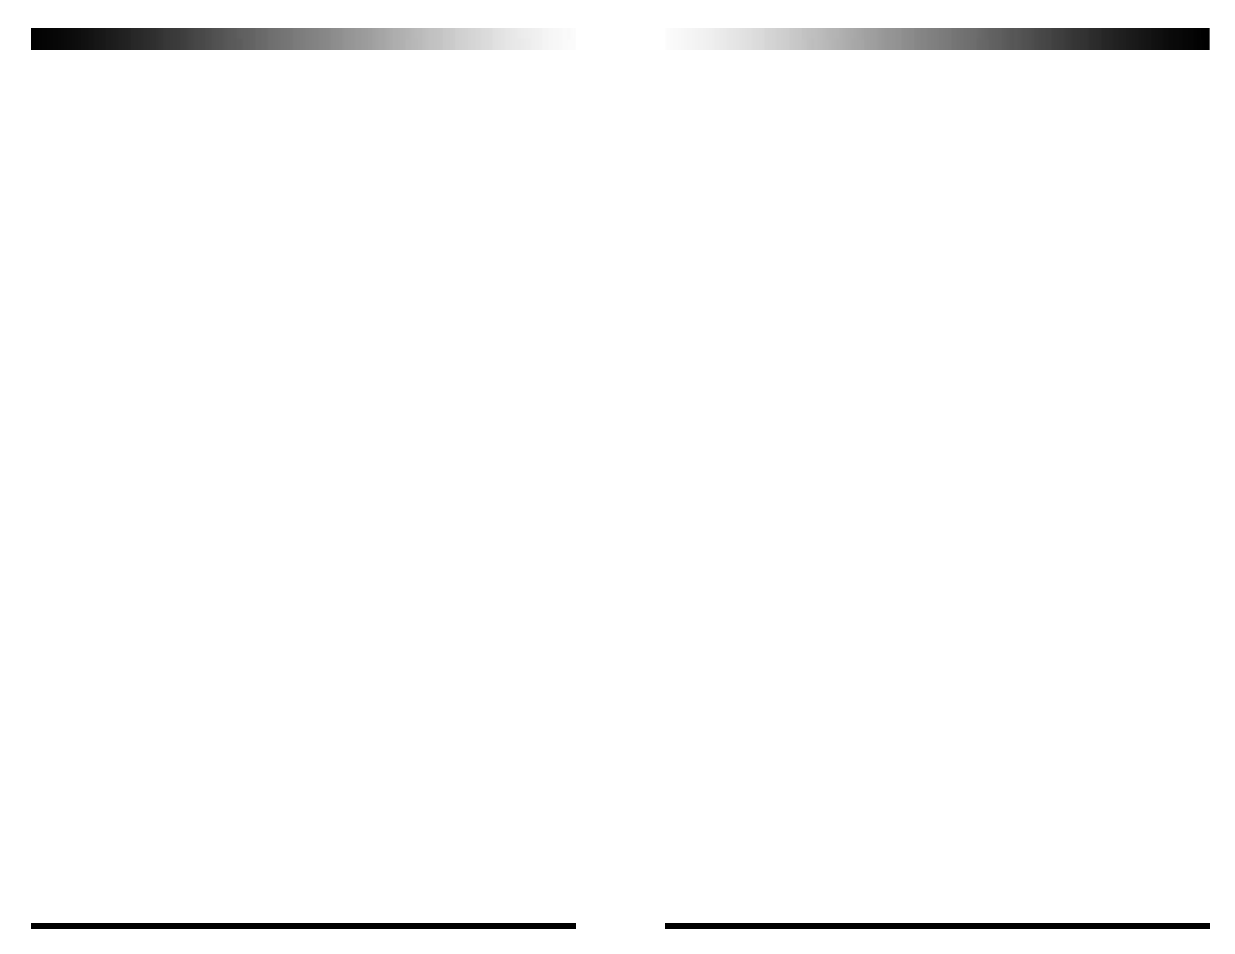 Coustic 320qe user manual page 2 11 also for 480qe publicscrutiny Choice Image